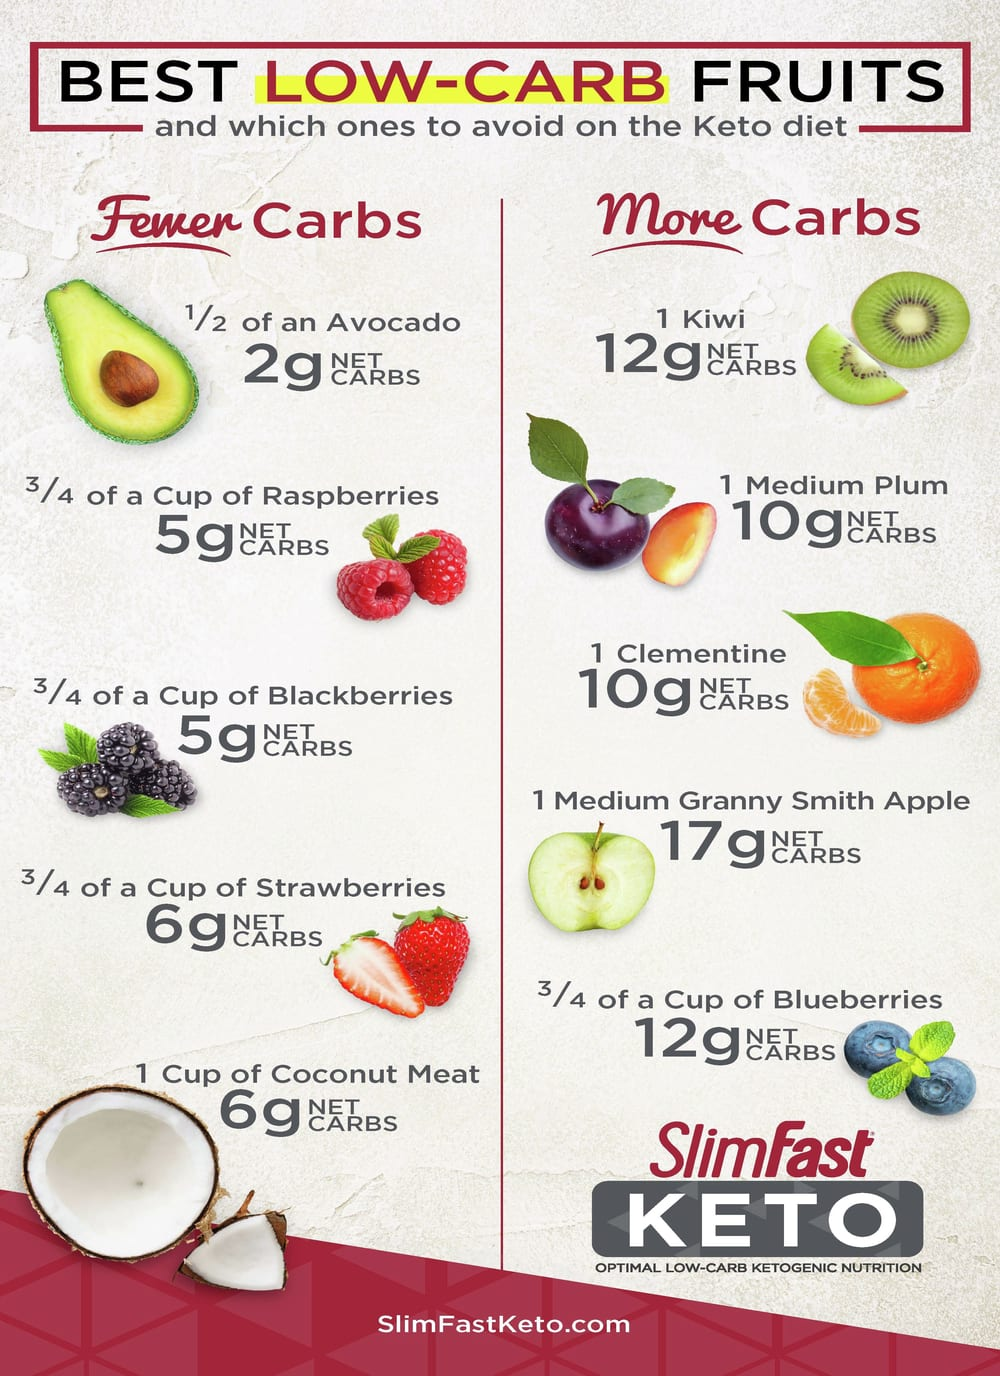 Keto dieters' fruit guide – List of 5 fruits with 6g or less of net carbs and 5 fruits with 17g or less of net carbs.